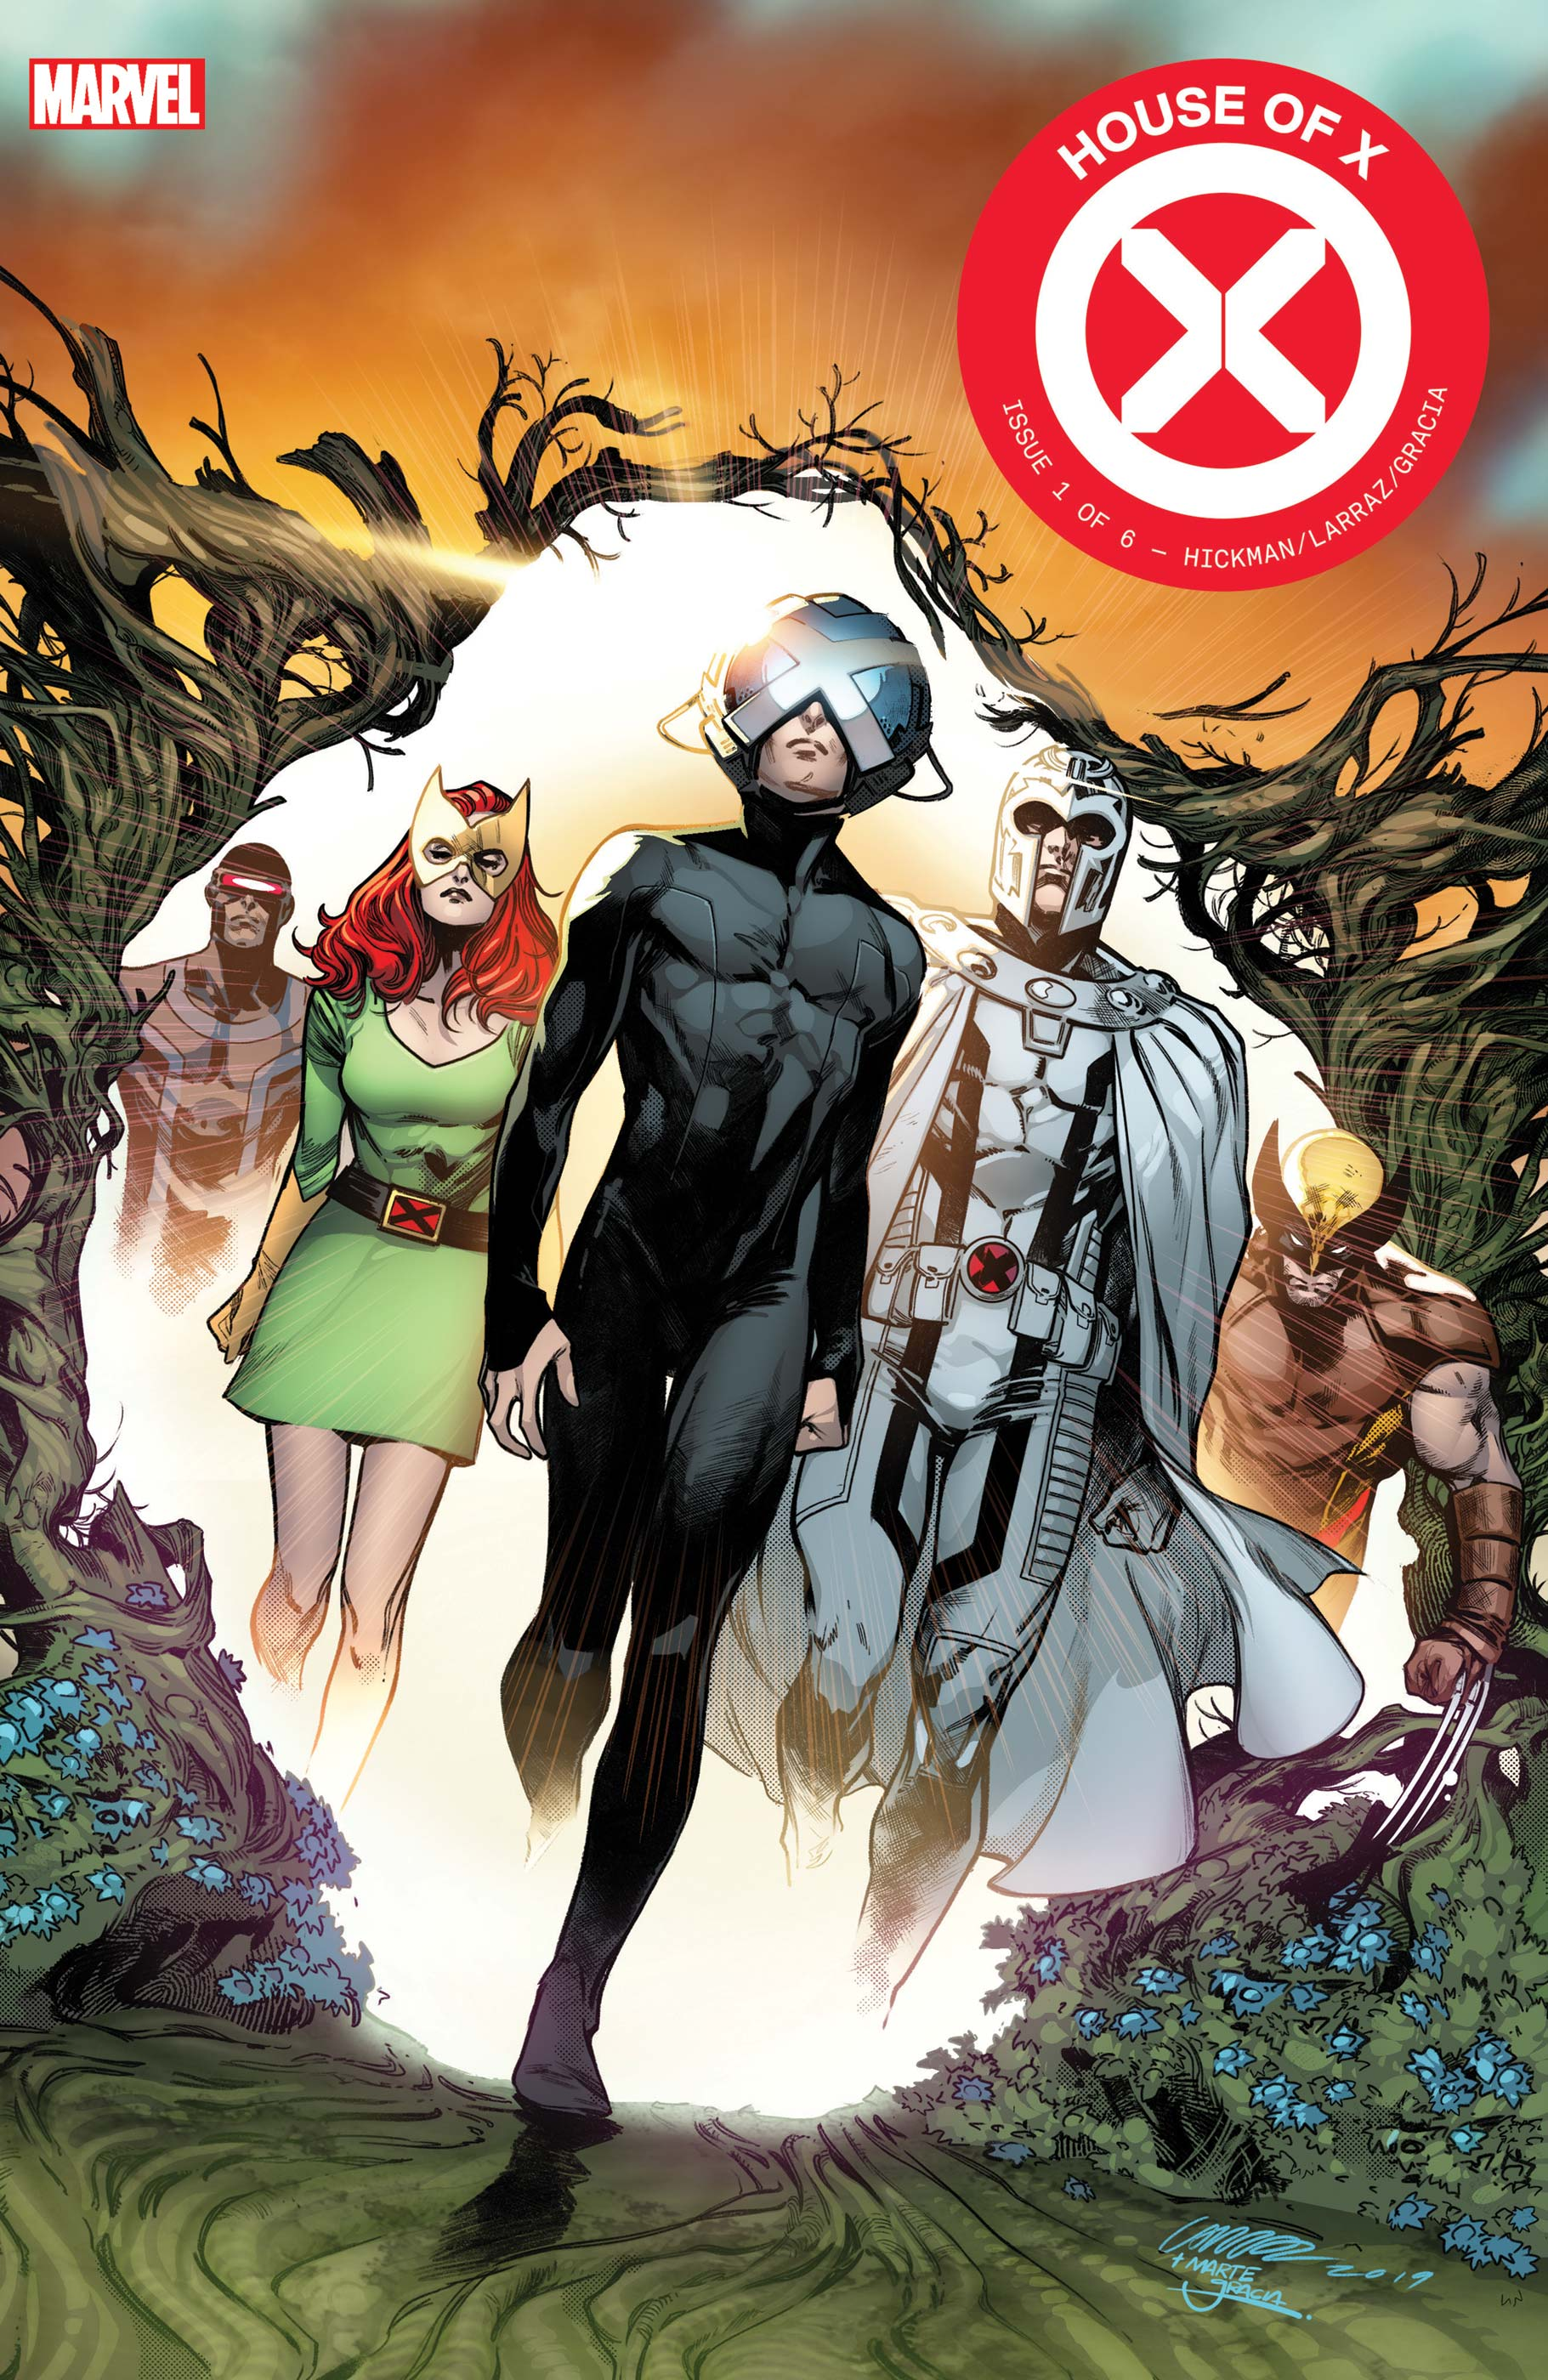 House of X #1 cover by Pepe Larraz and Marte Gracia